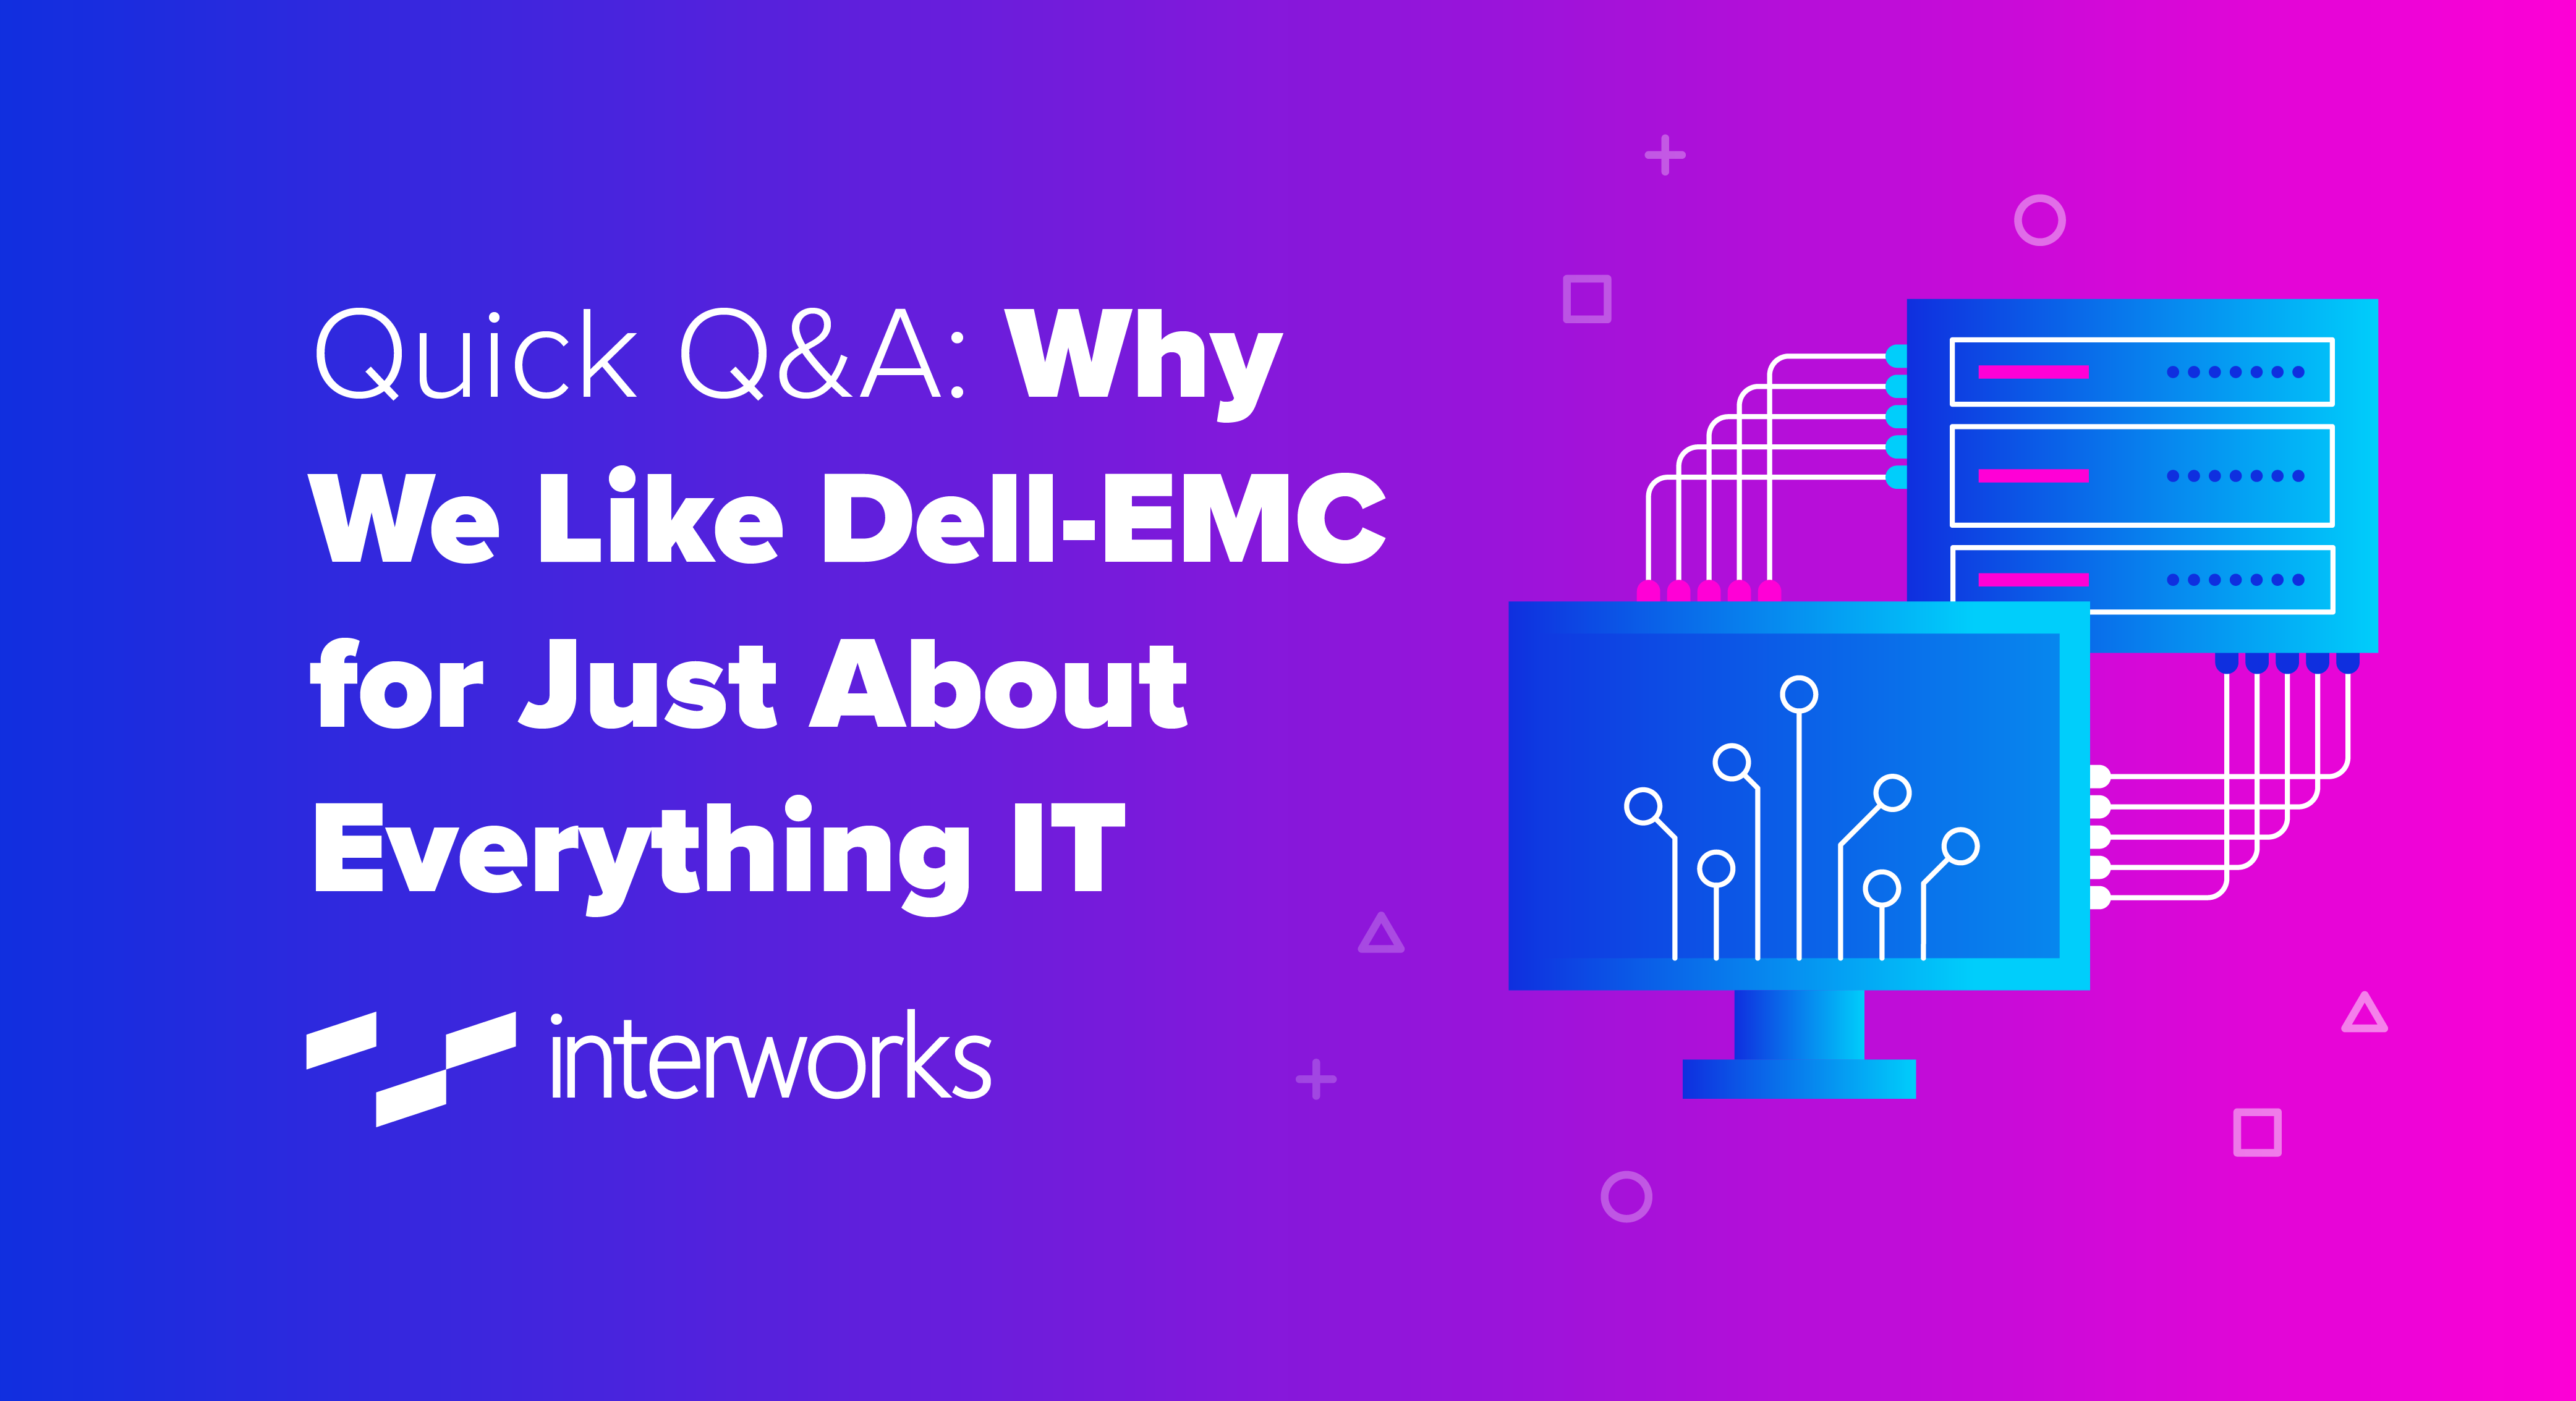 Quick Q&A: Why We Like Dell-EMC for Just About Everything IT